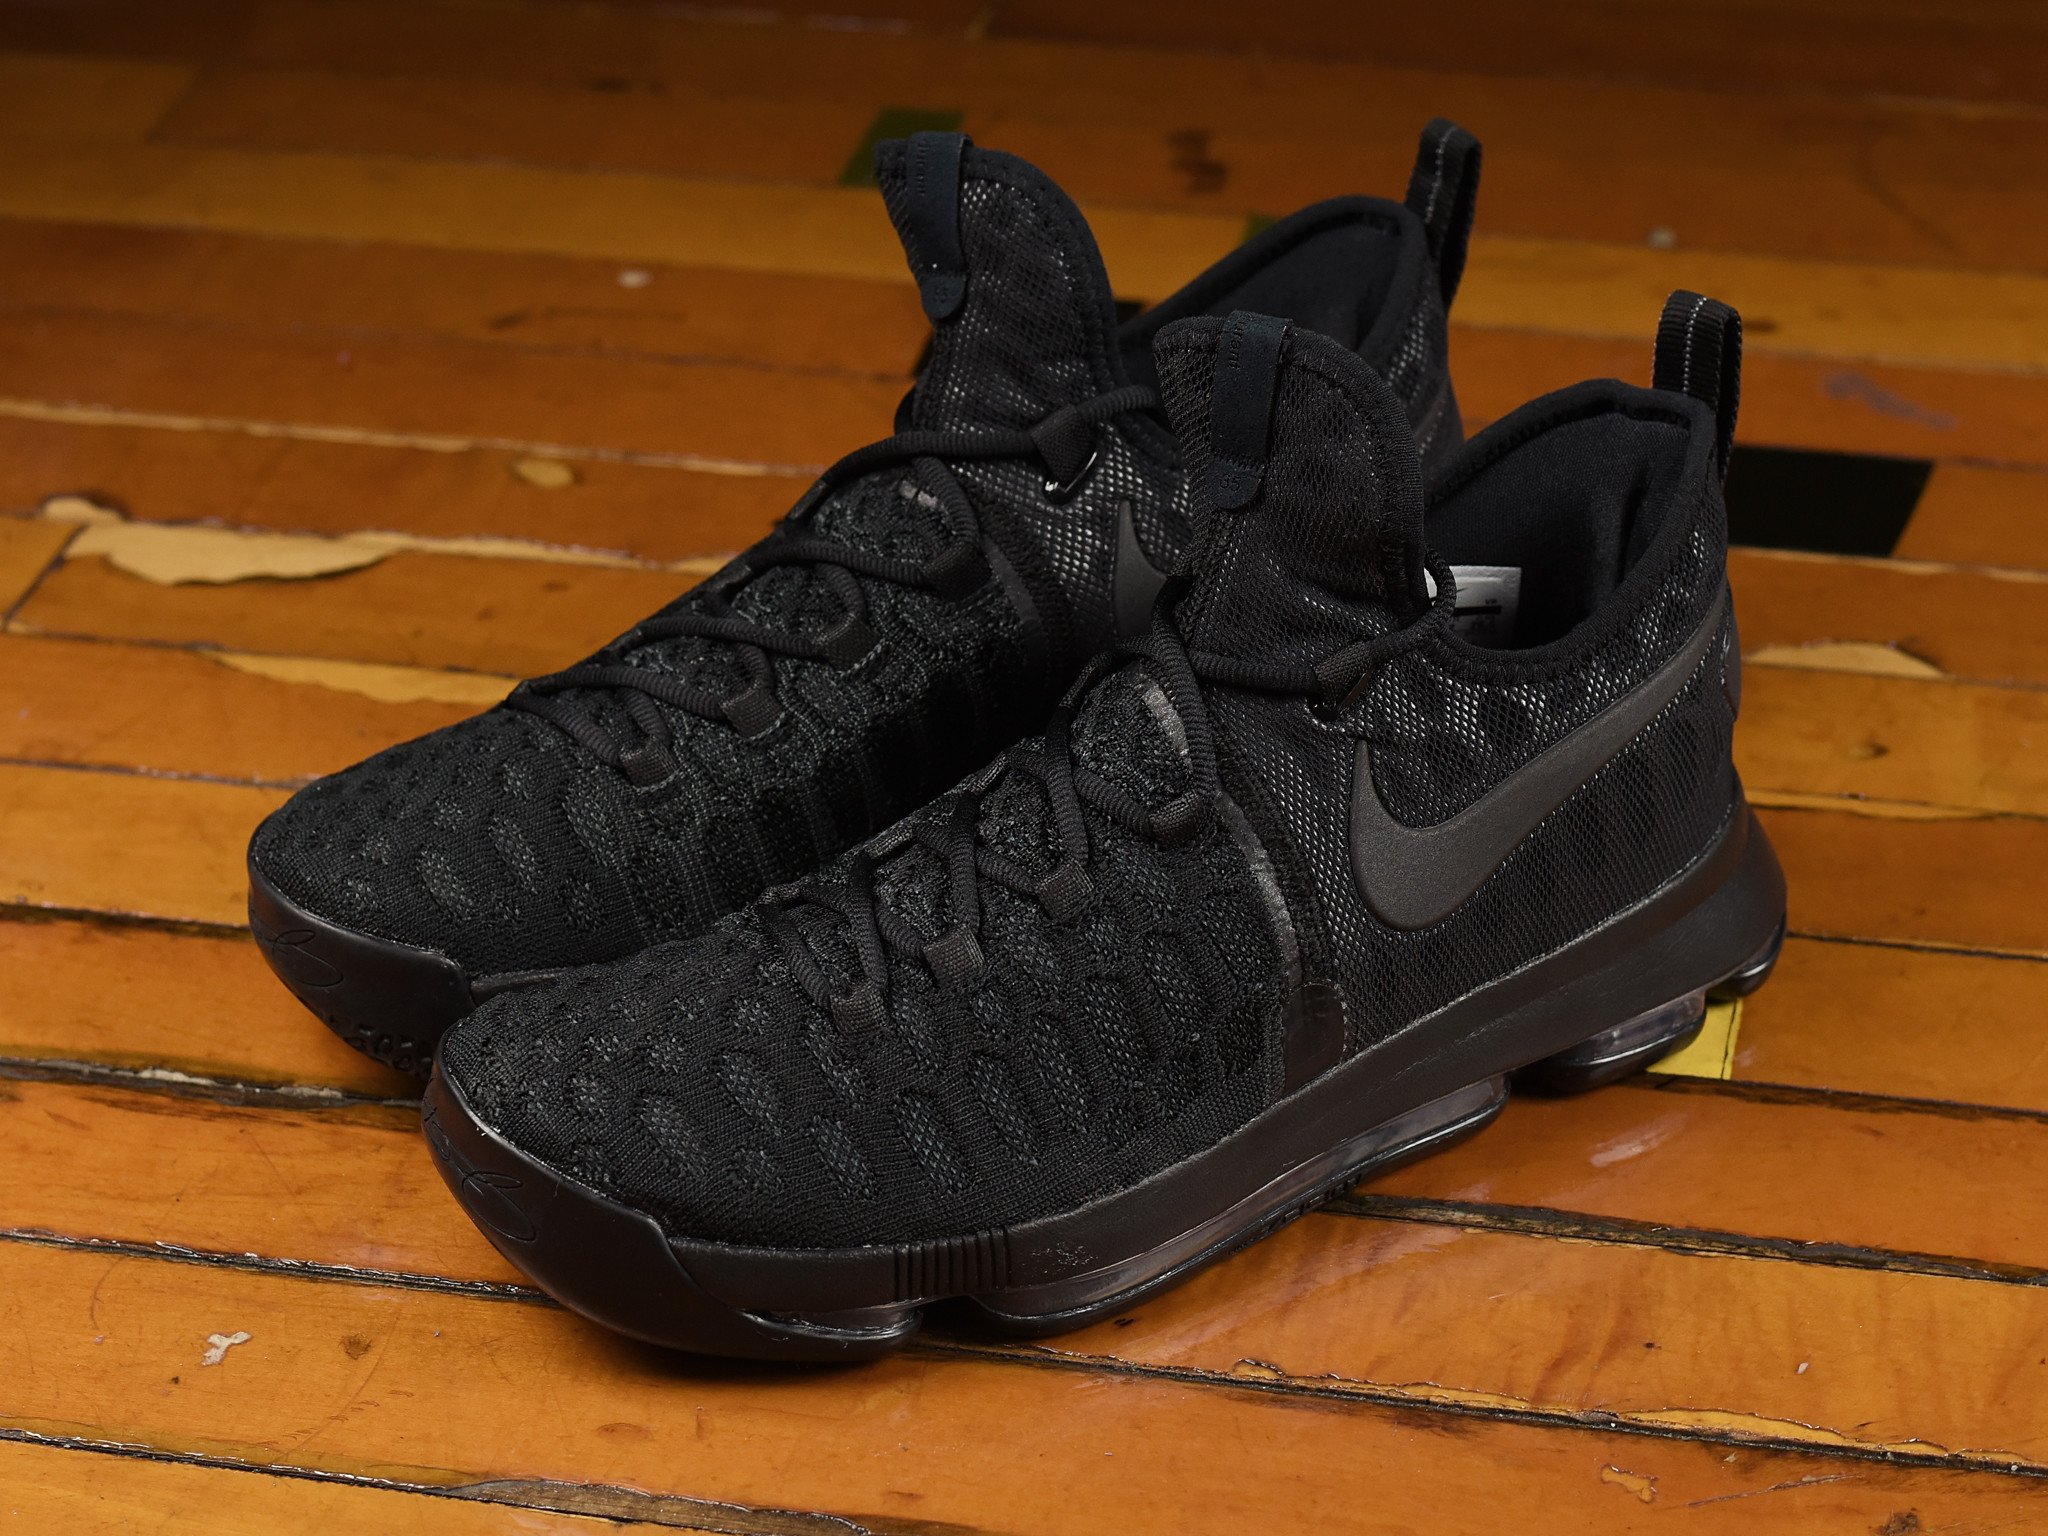 low cost 5d1a2 7aa19 Check Out the Nike KD 9 in 'Triple Black' - WearTesters